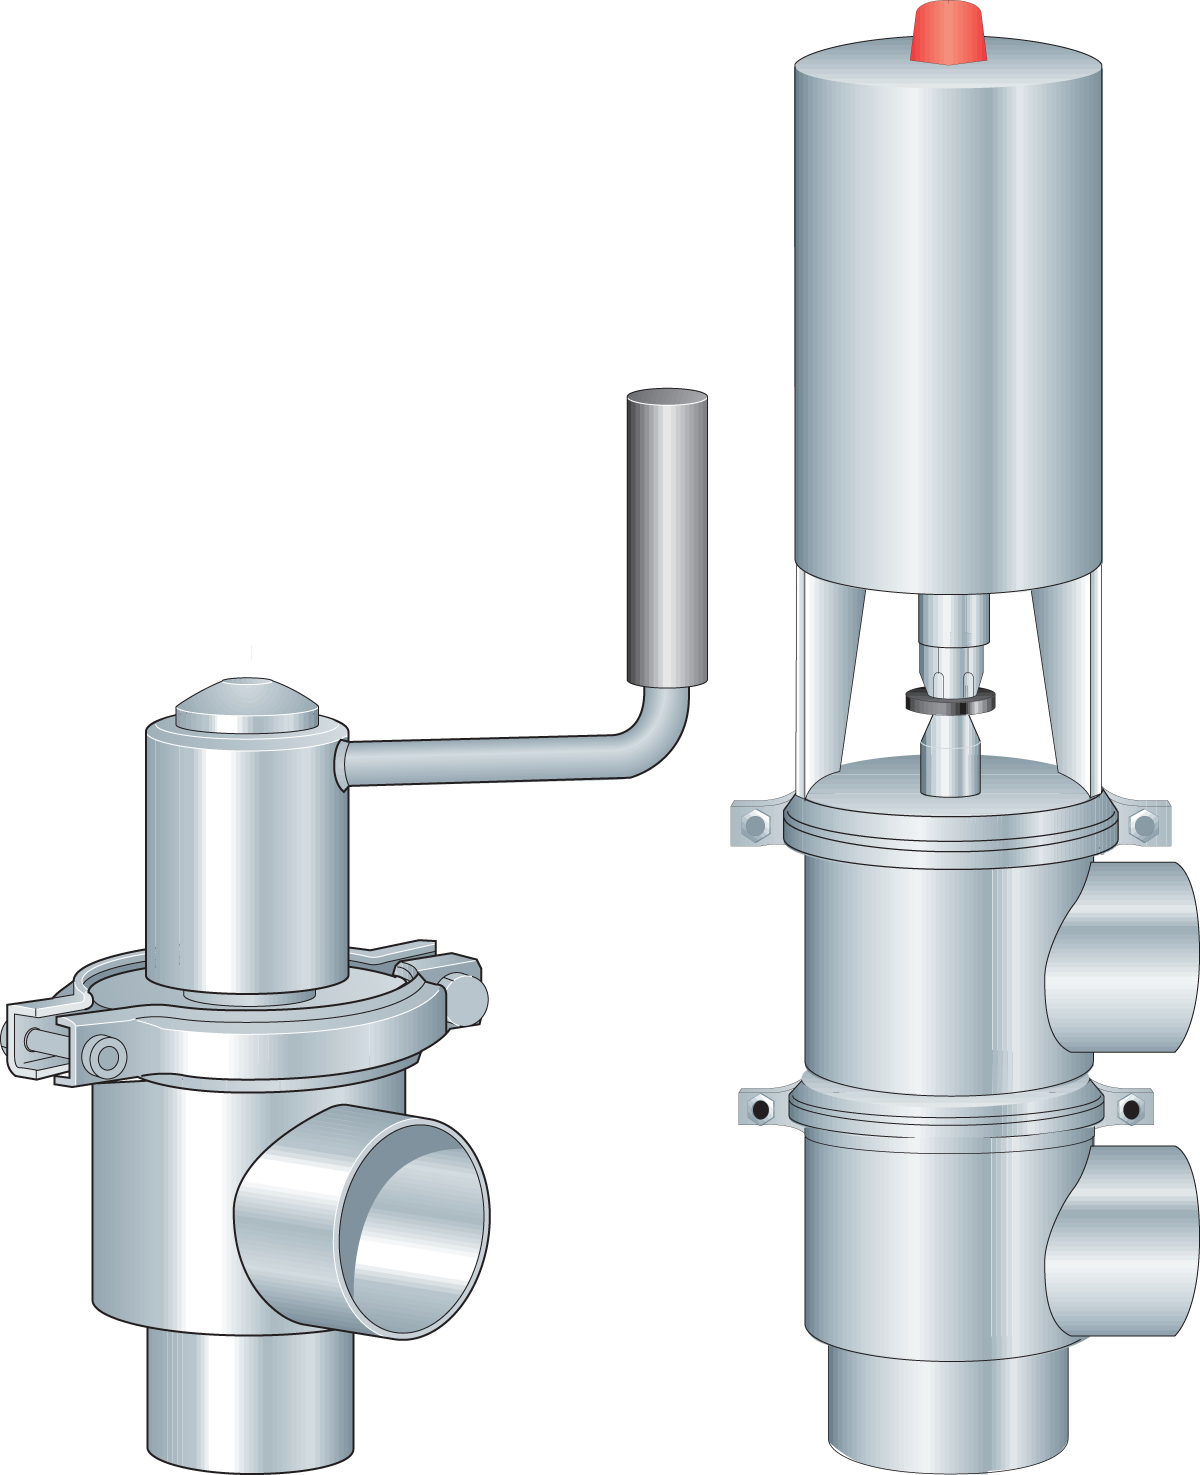 Pipes, valves and fittings | Dairy Processing Handbook